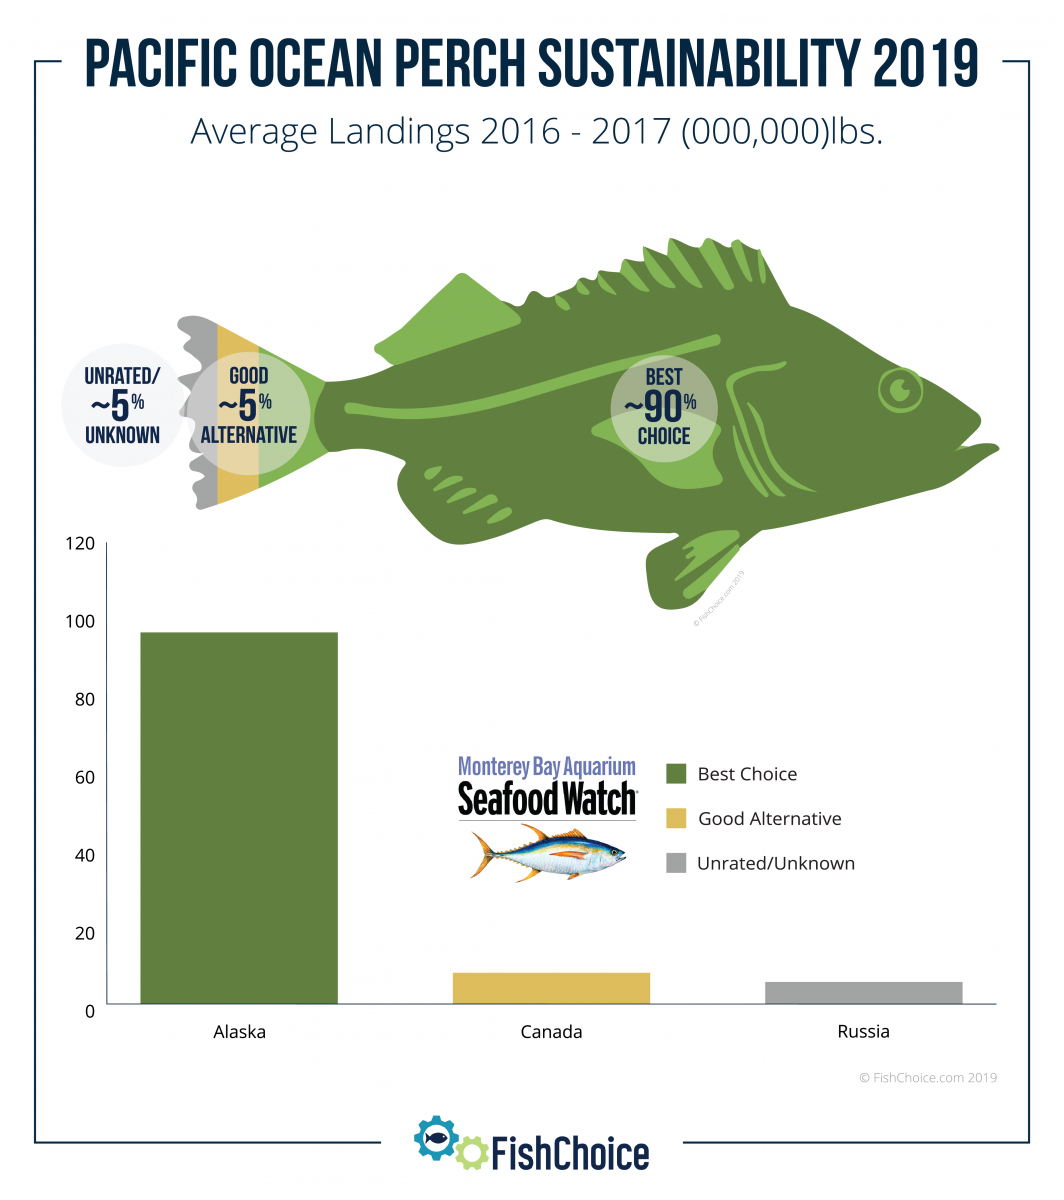 Pacific Ocean Perch Sustainability